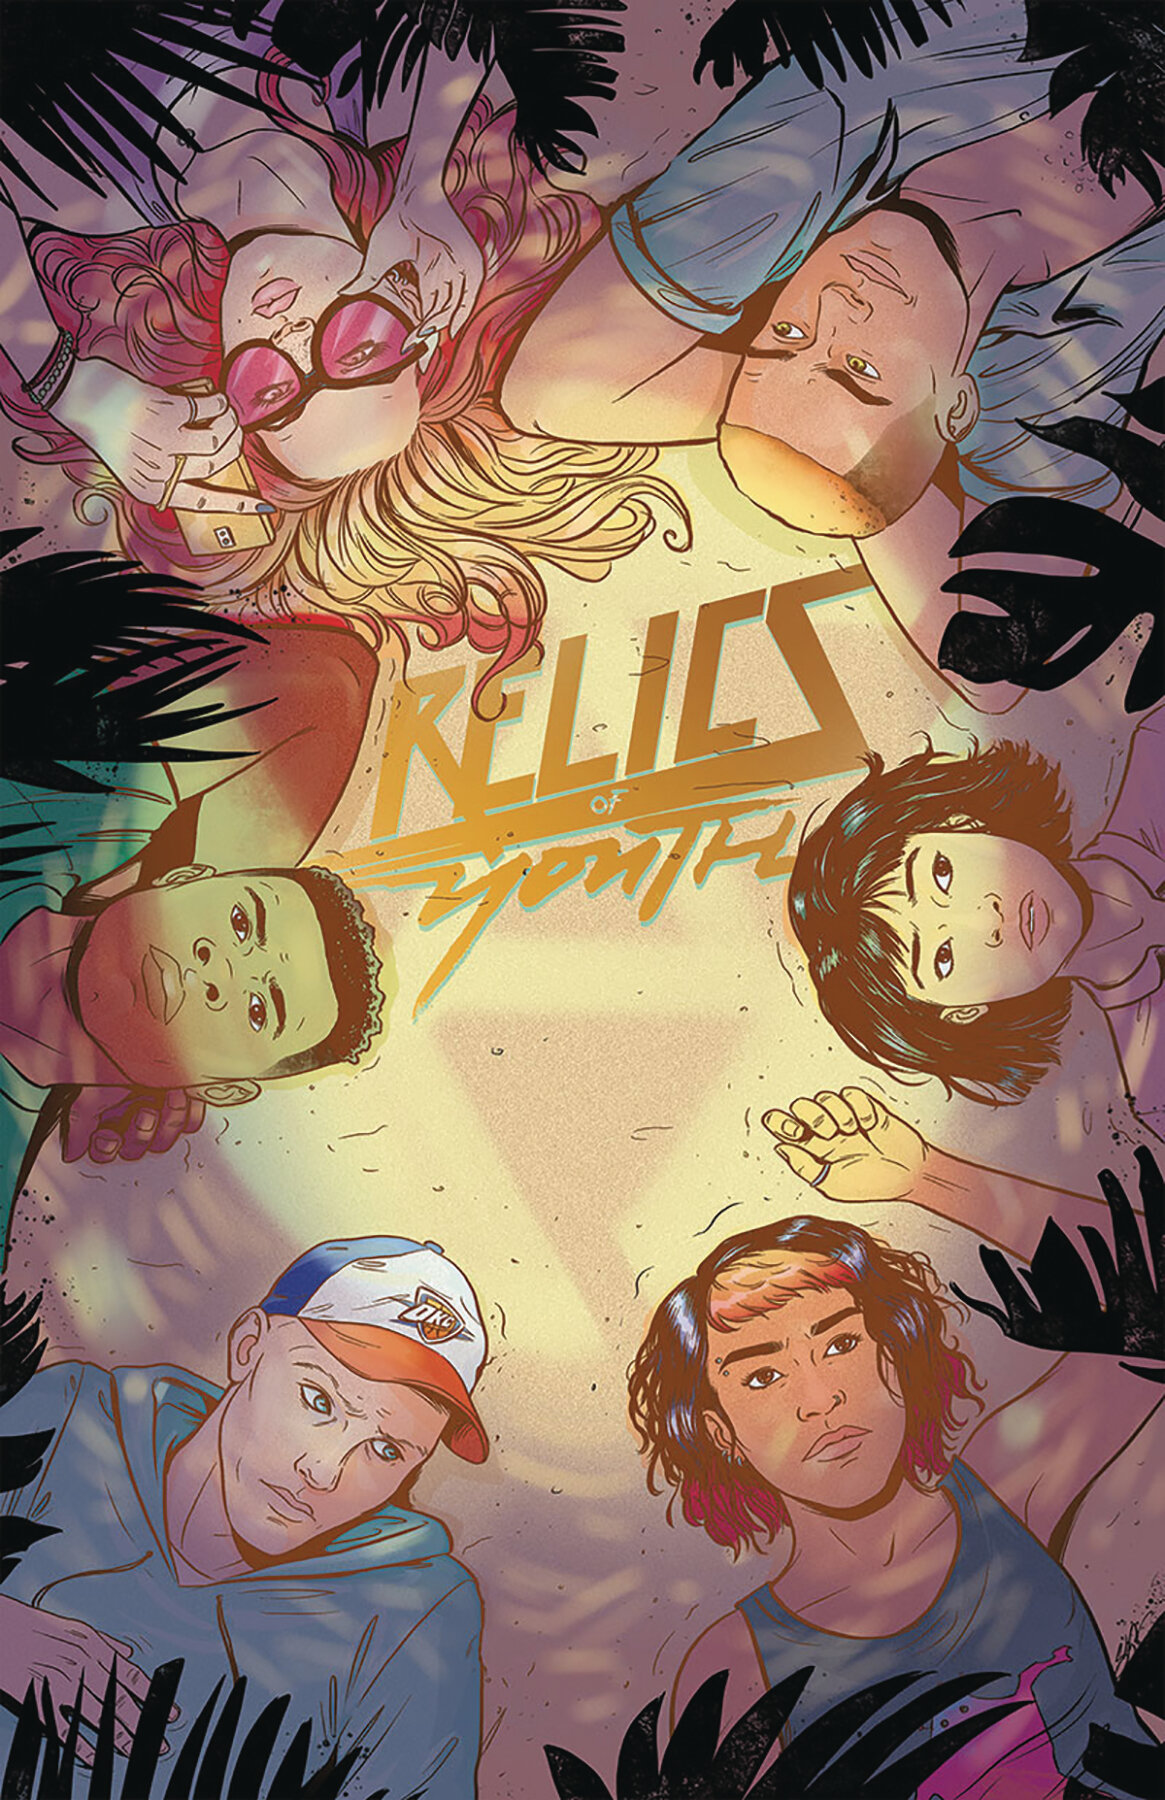 Relics of Youth #1  is out 9/25/2019.